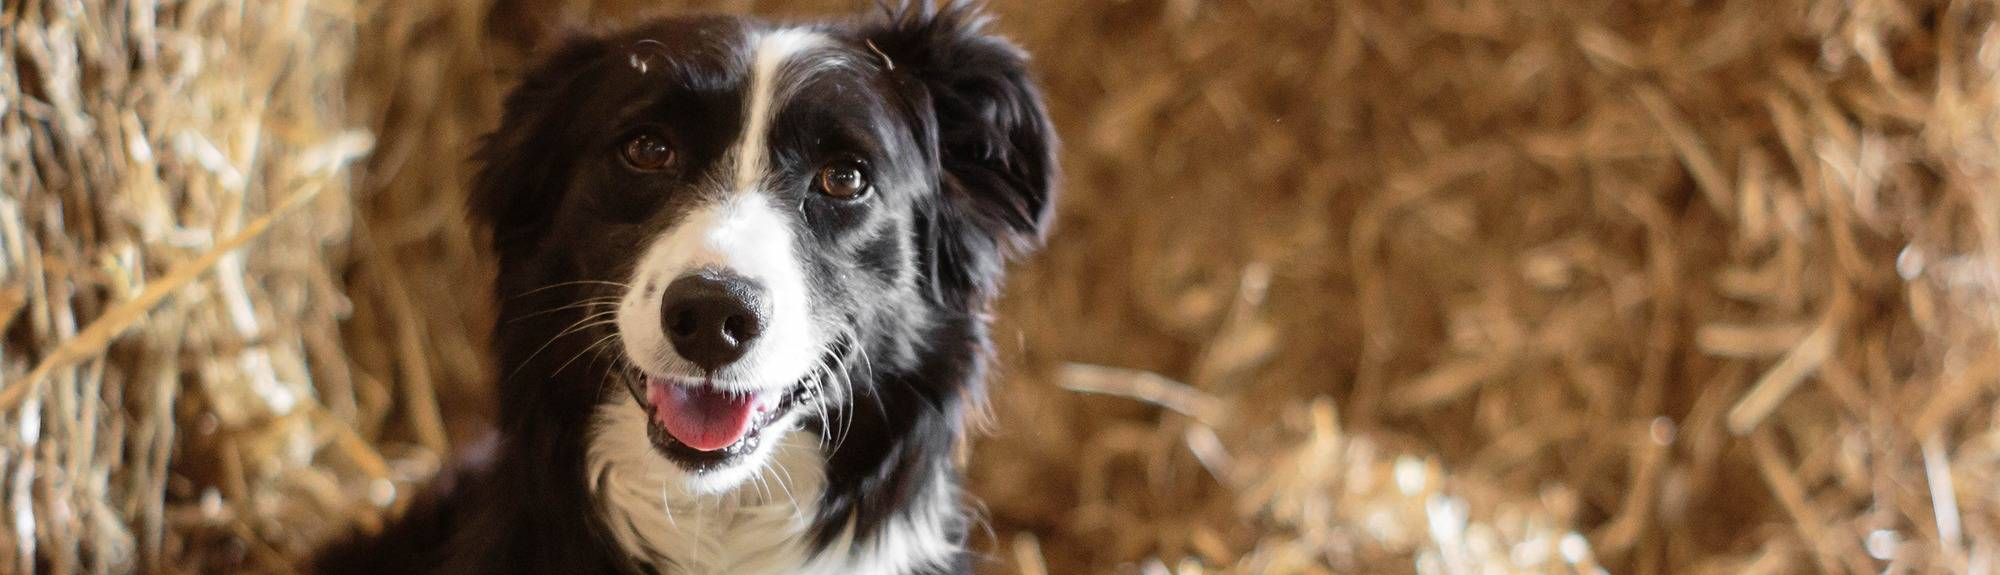 Border Collie dog sitting in straw